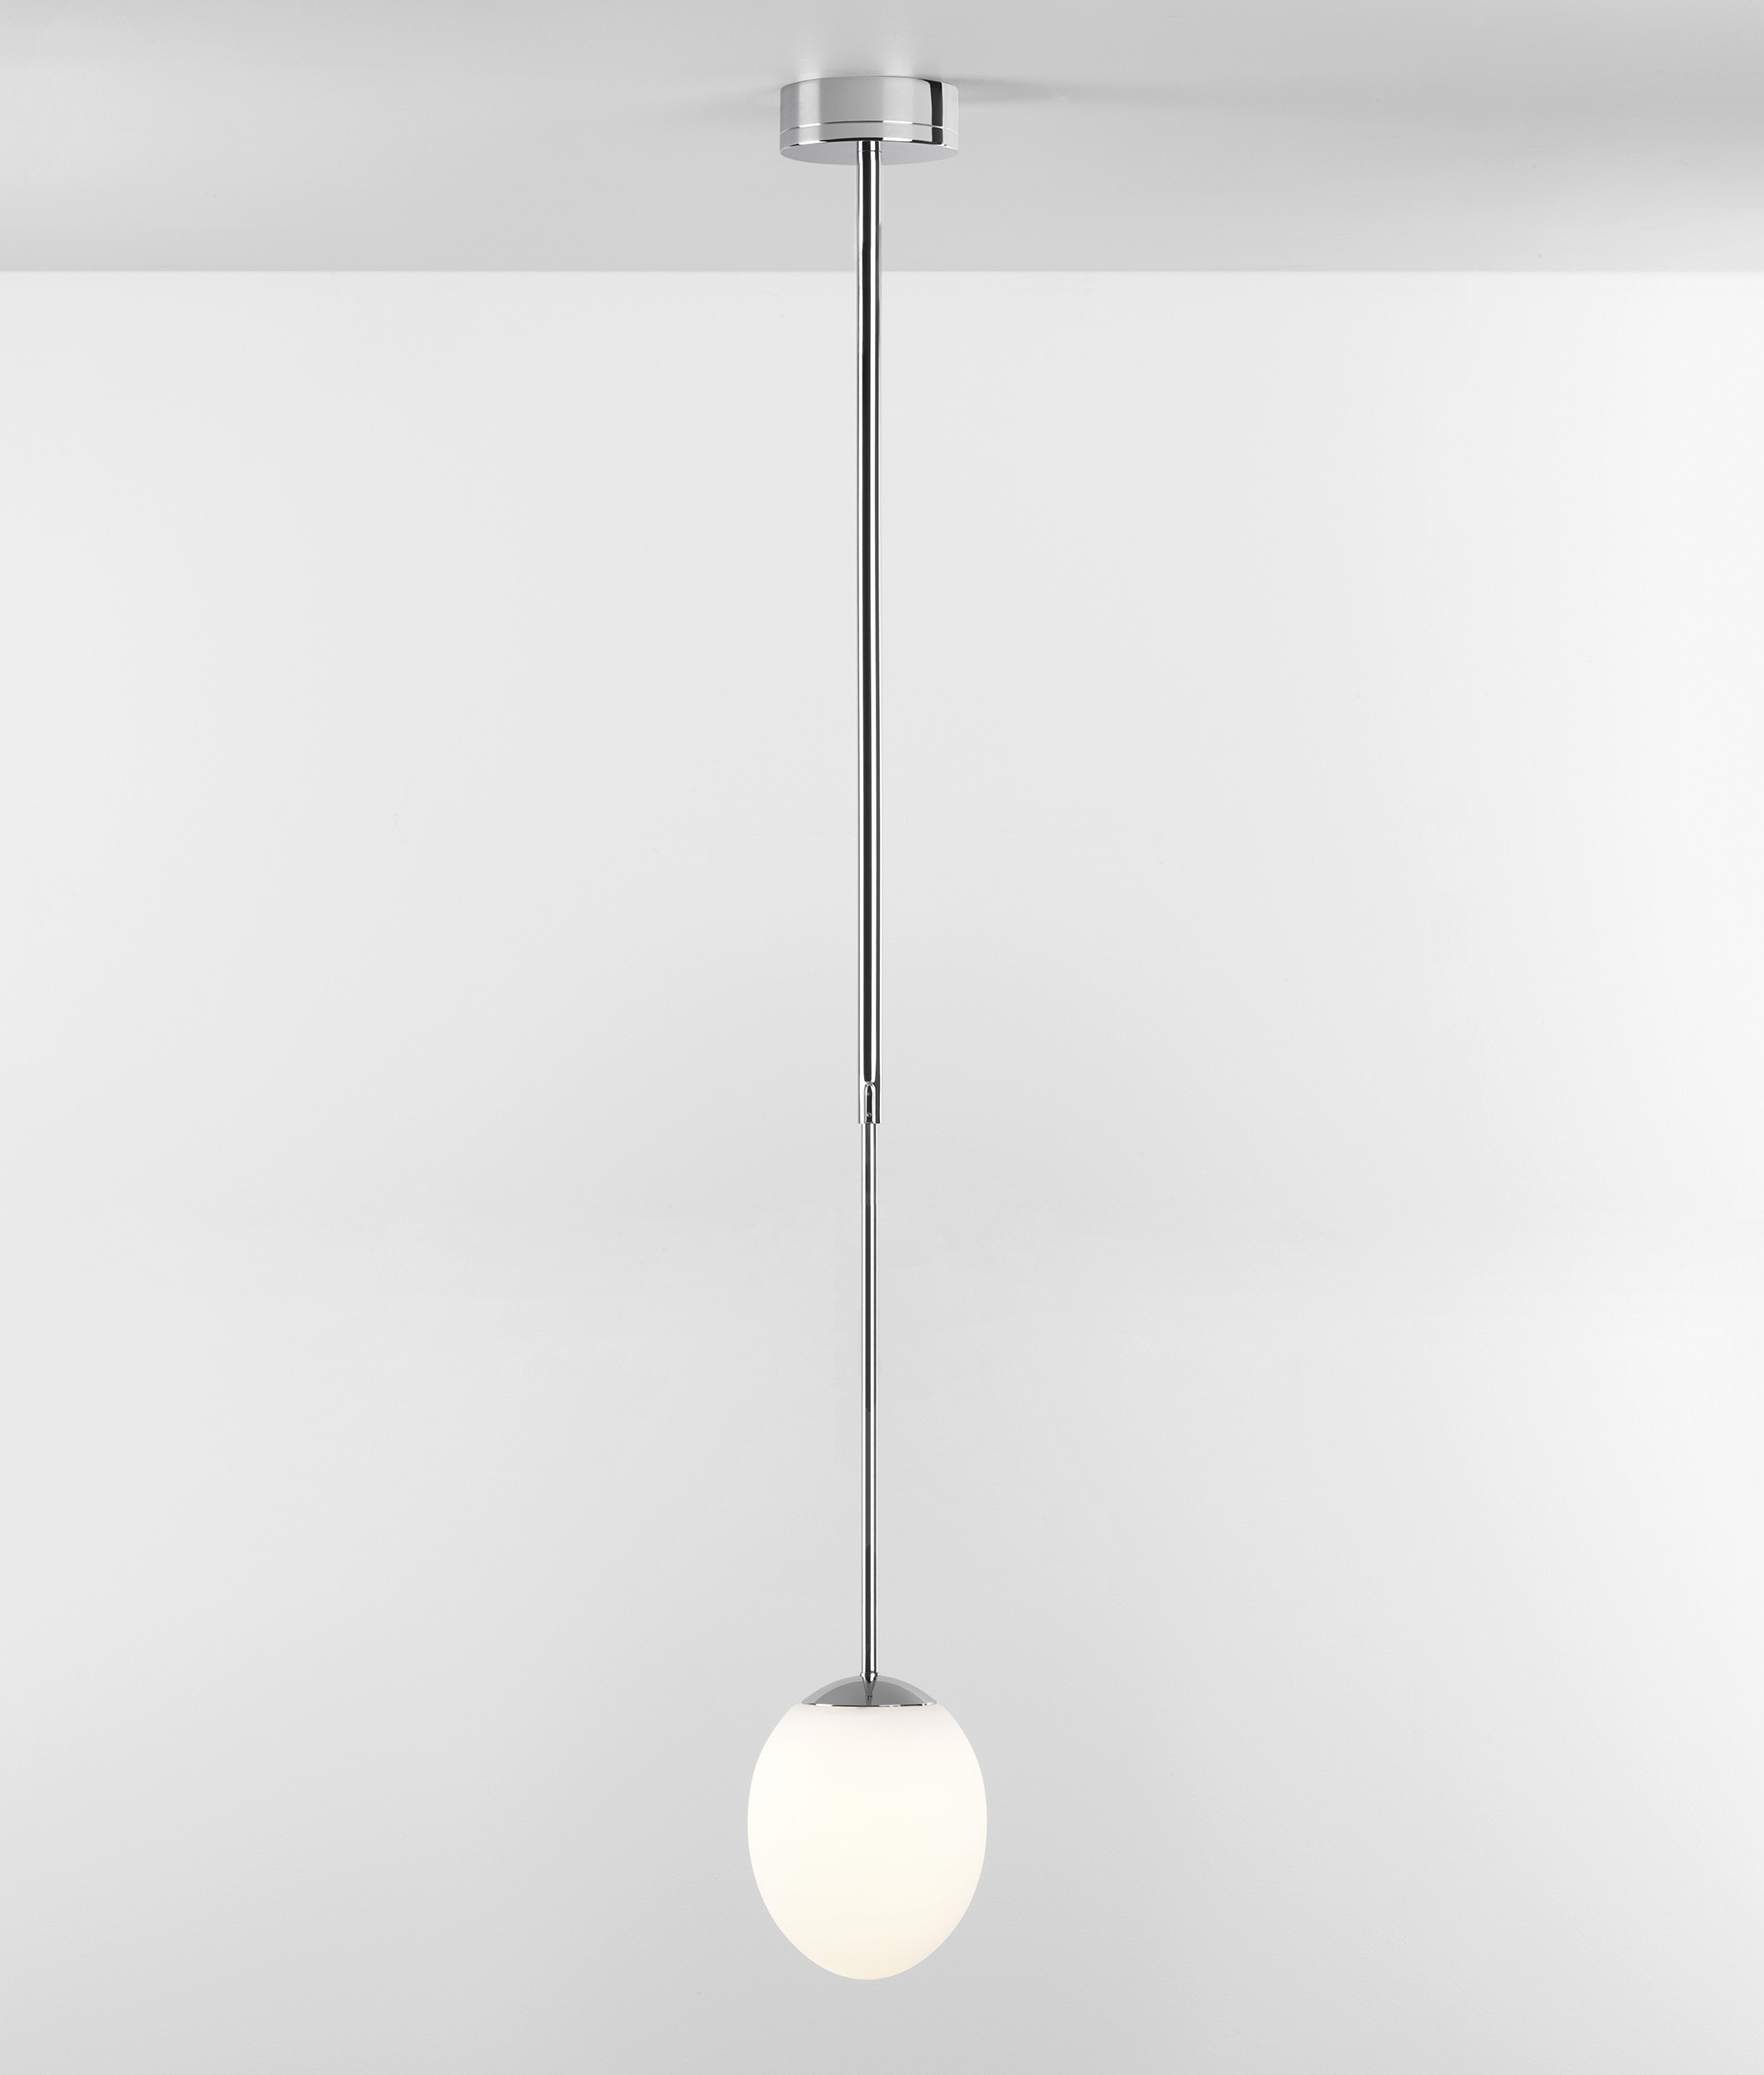 ceiling theteenline lights lighting led low suspended org basement profile for drop recessed